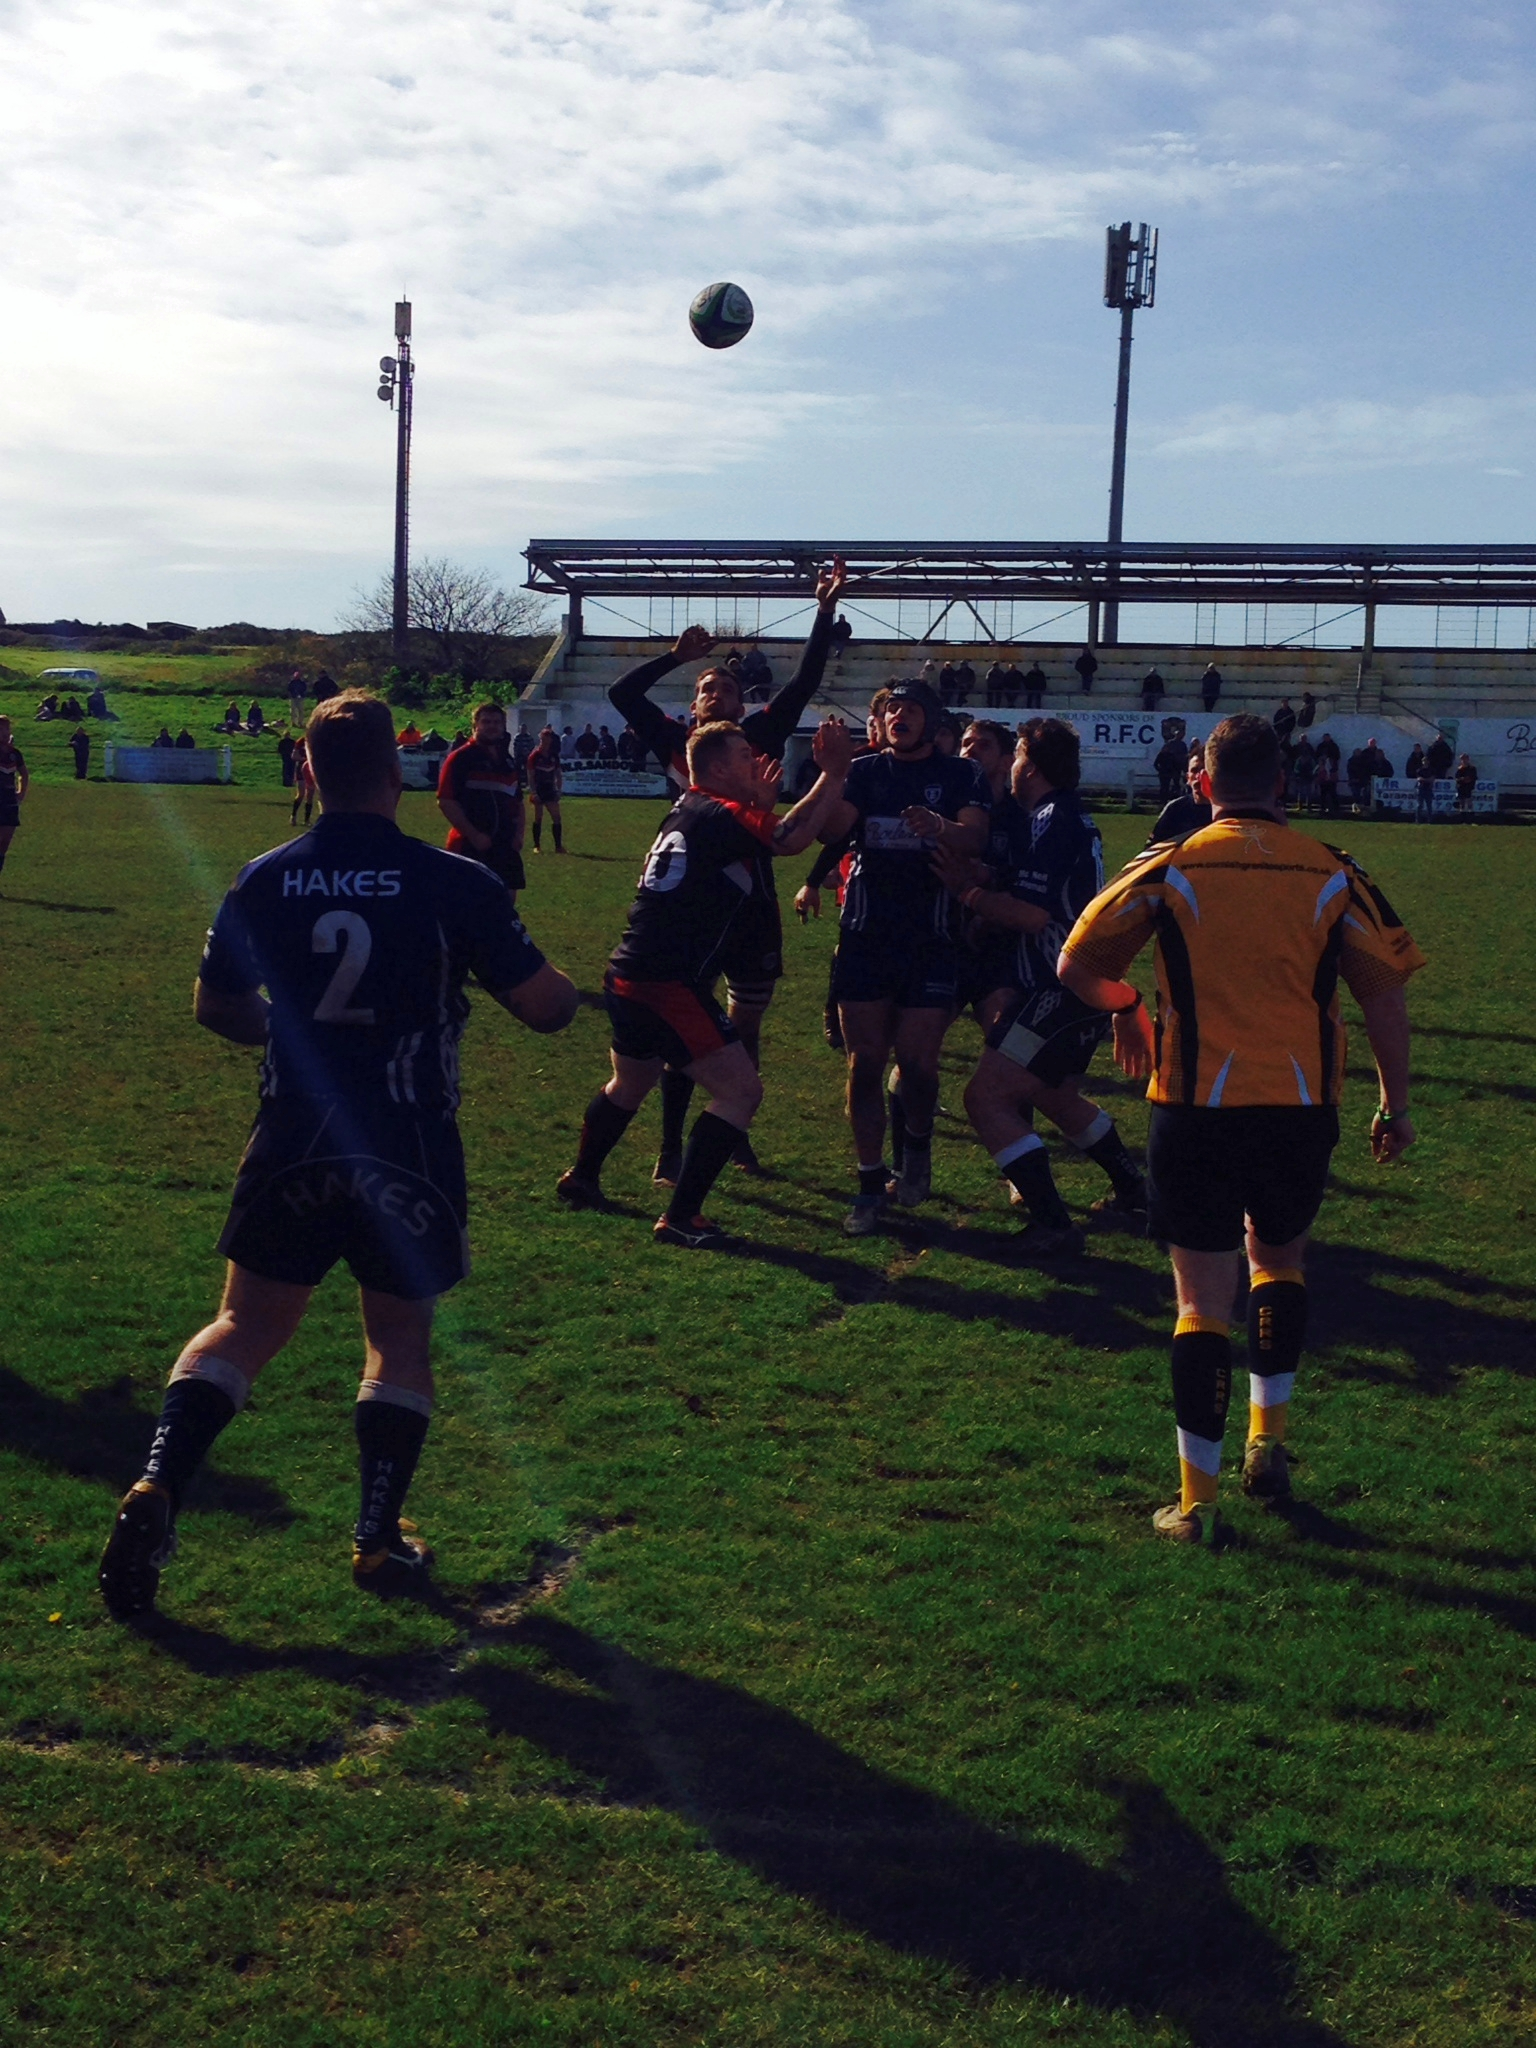 Penryn cement top six spot with impressive bonus point victory over St Ives